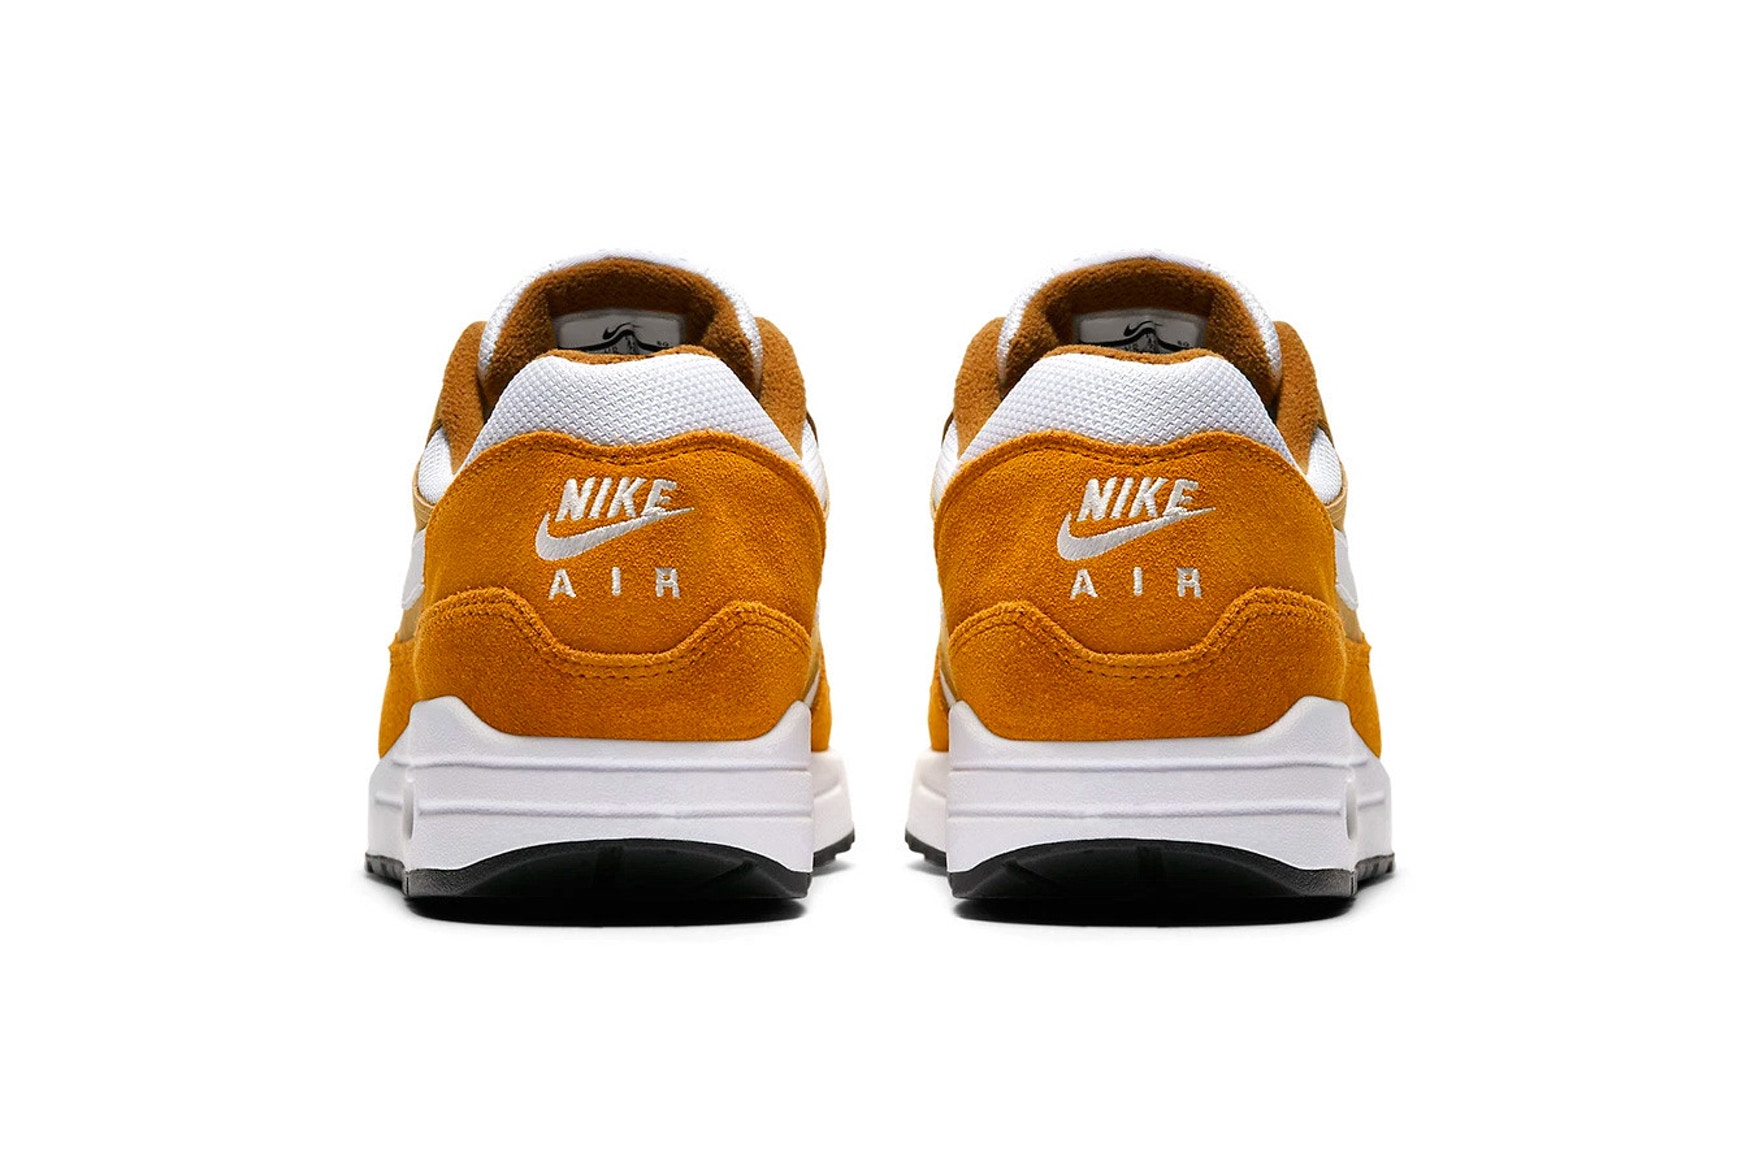 nike-air-max-1-curry-pack-release-date-6